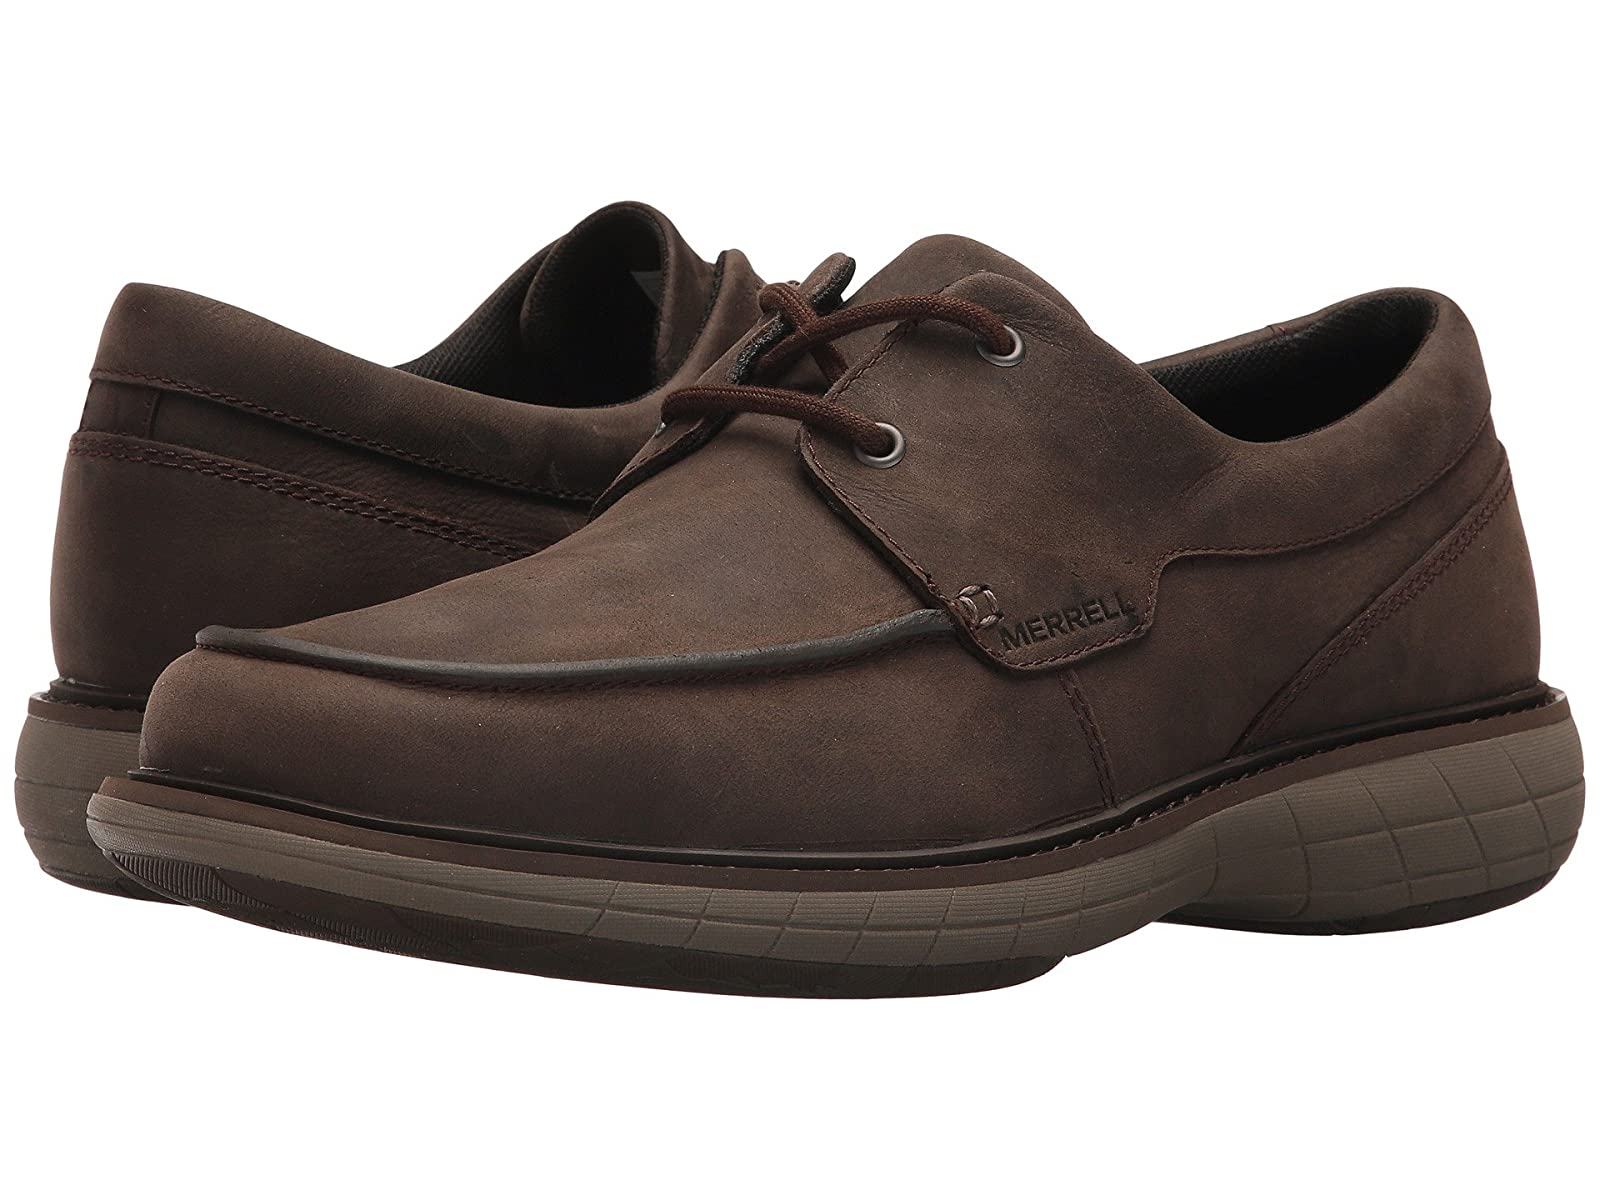 Merrell World Vue OxfordCheap and distinctive eye-catching shoes